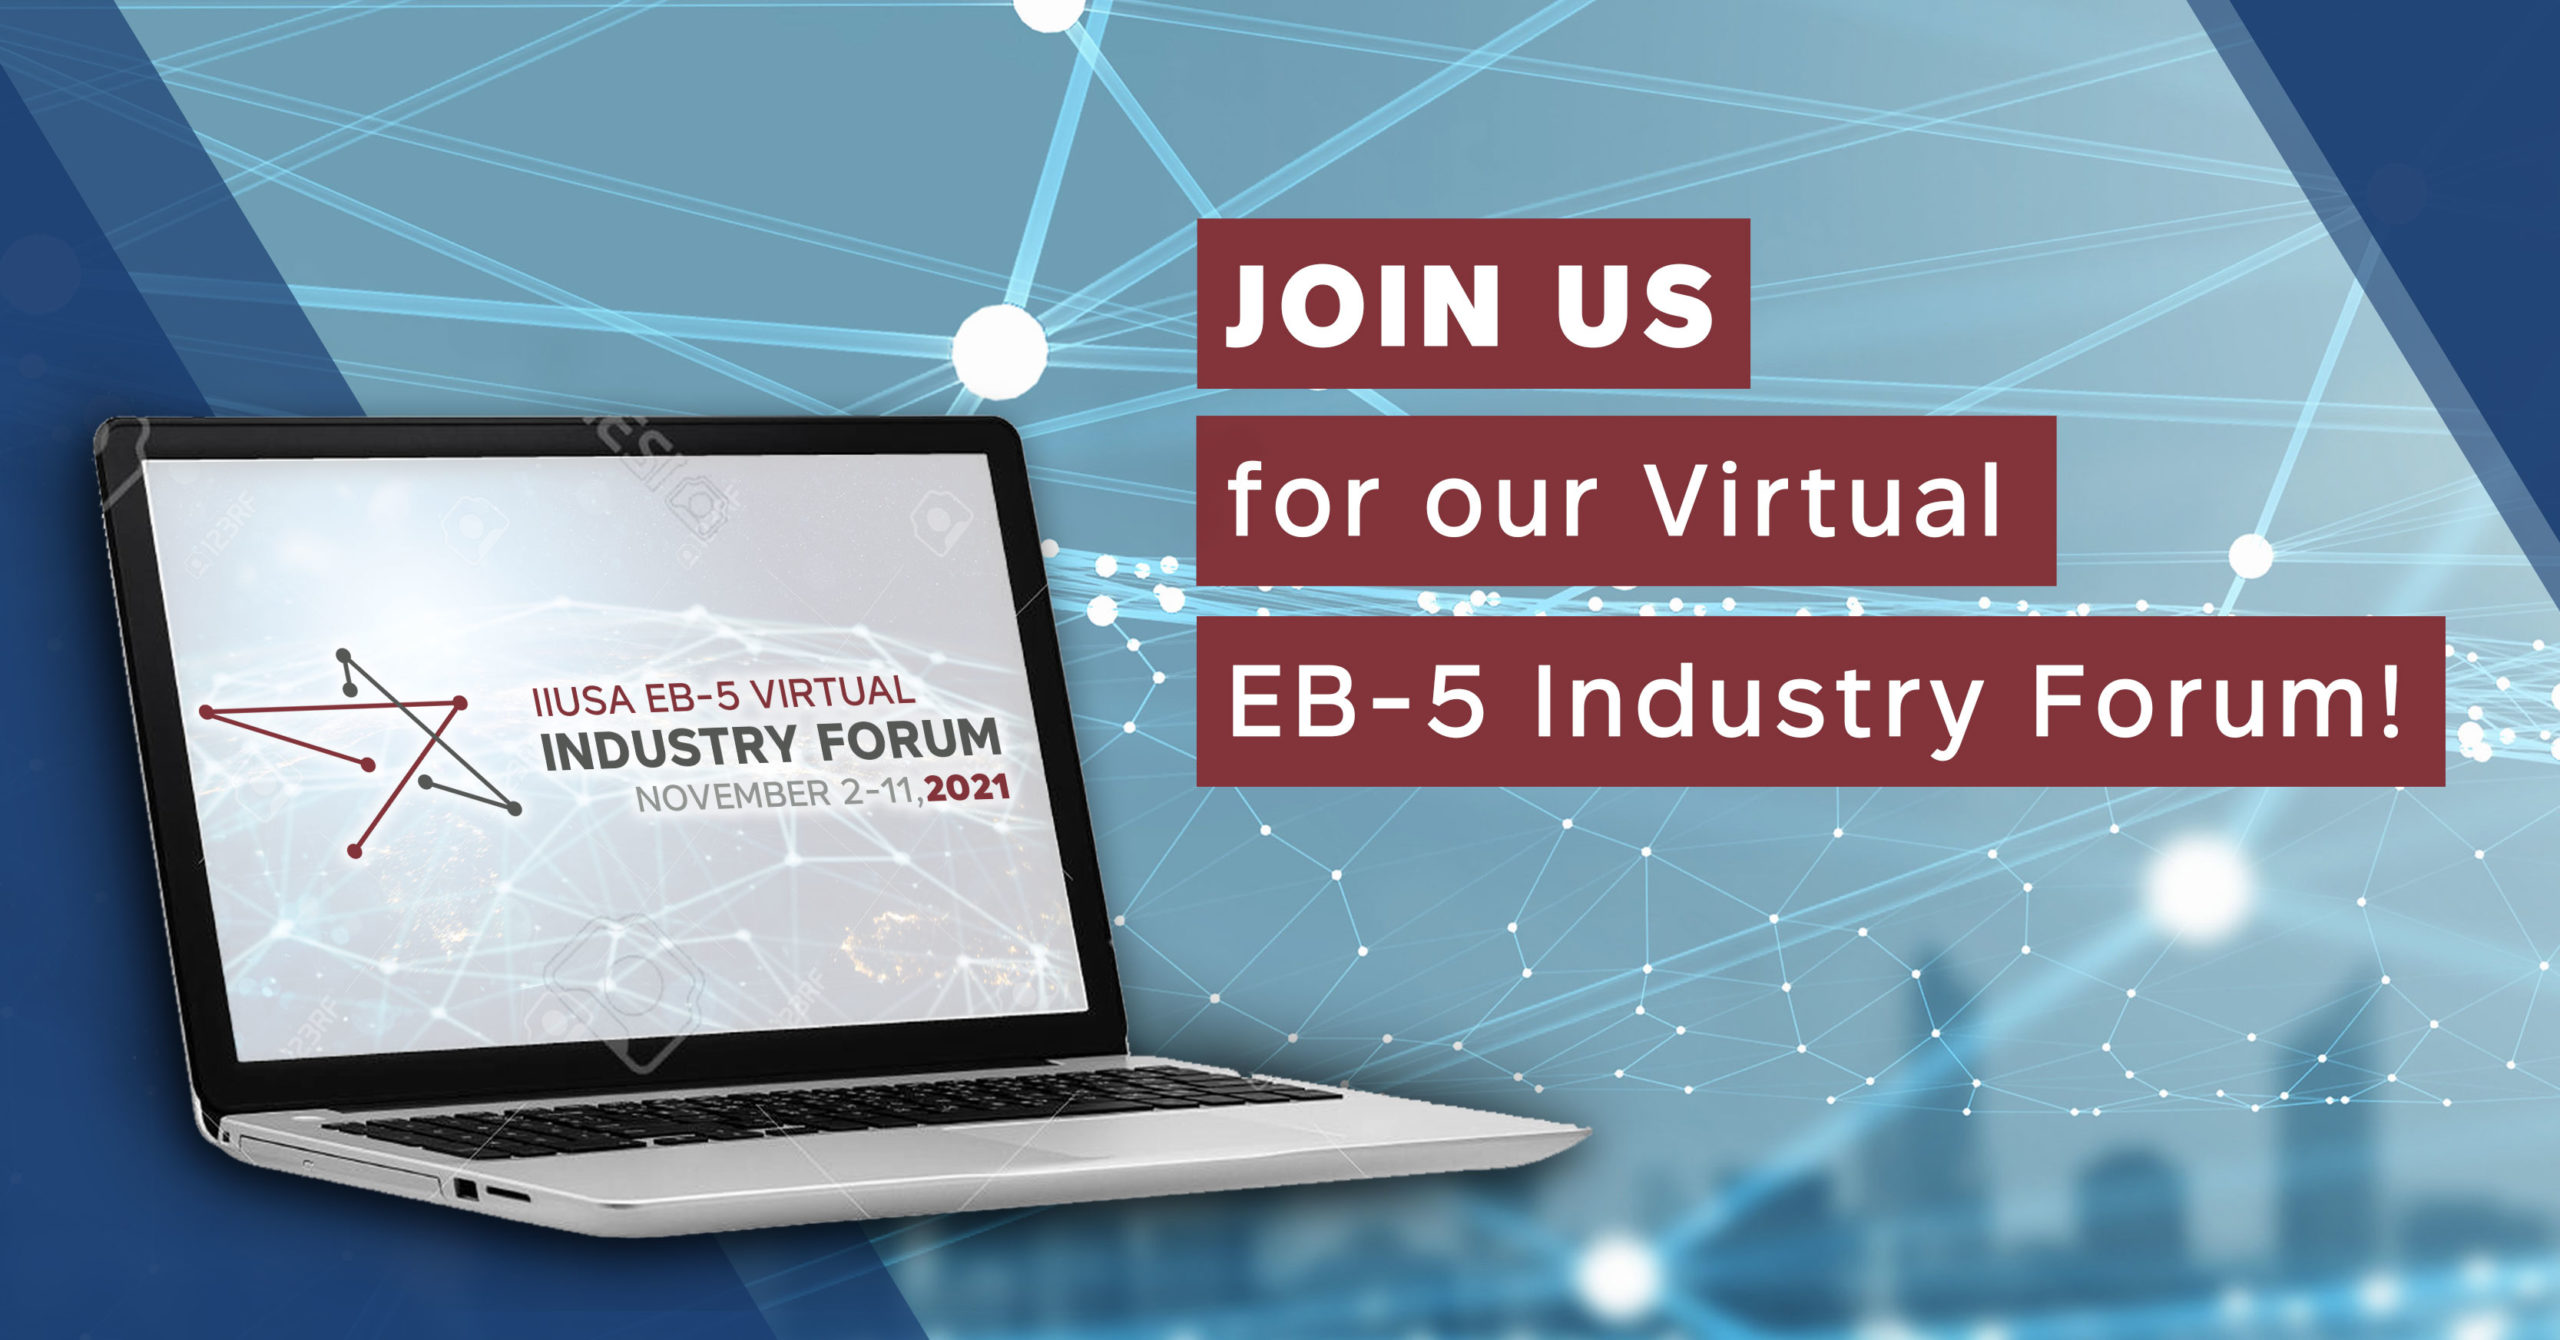 Announcing the Virtual EB-5 Industry Forum Schedule